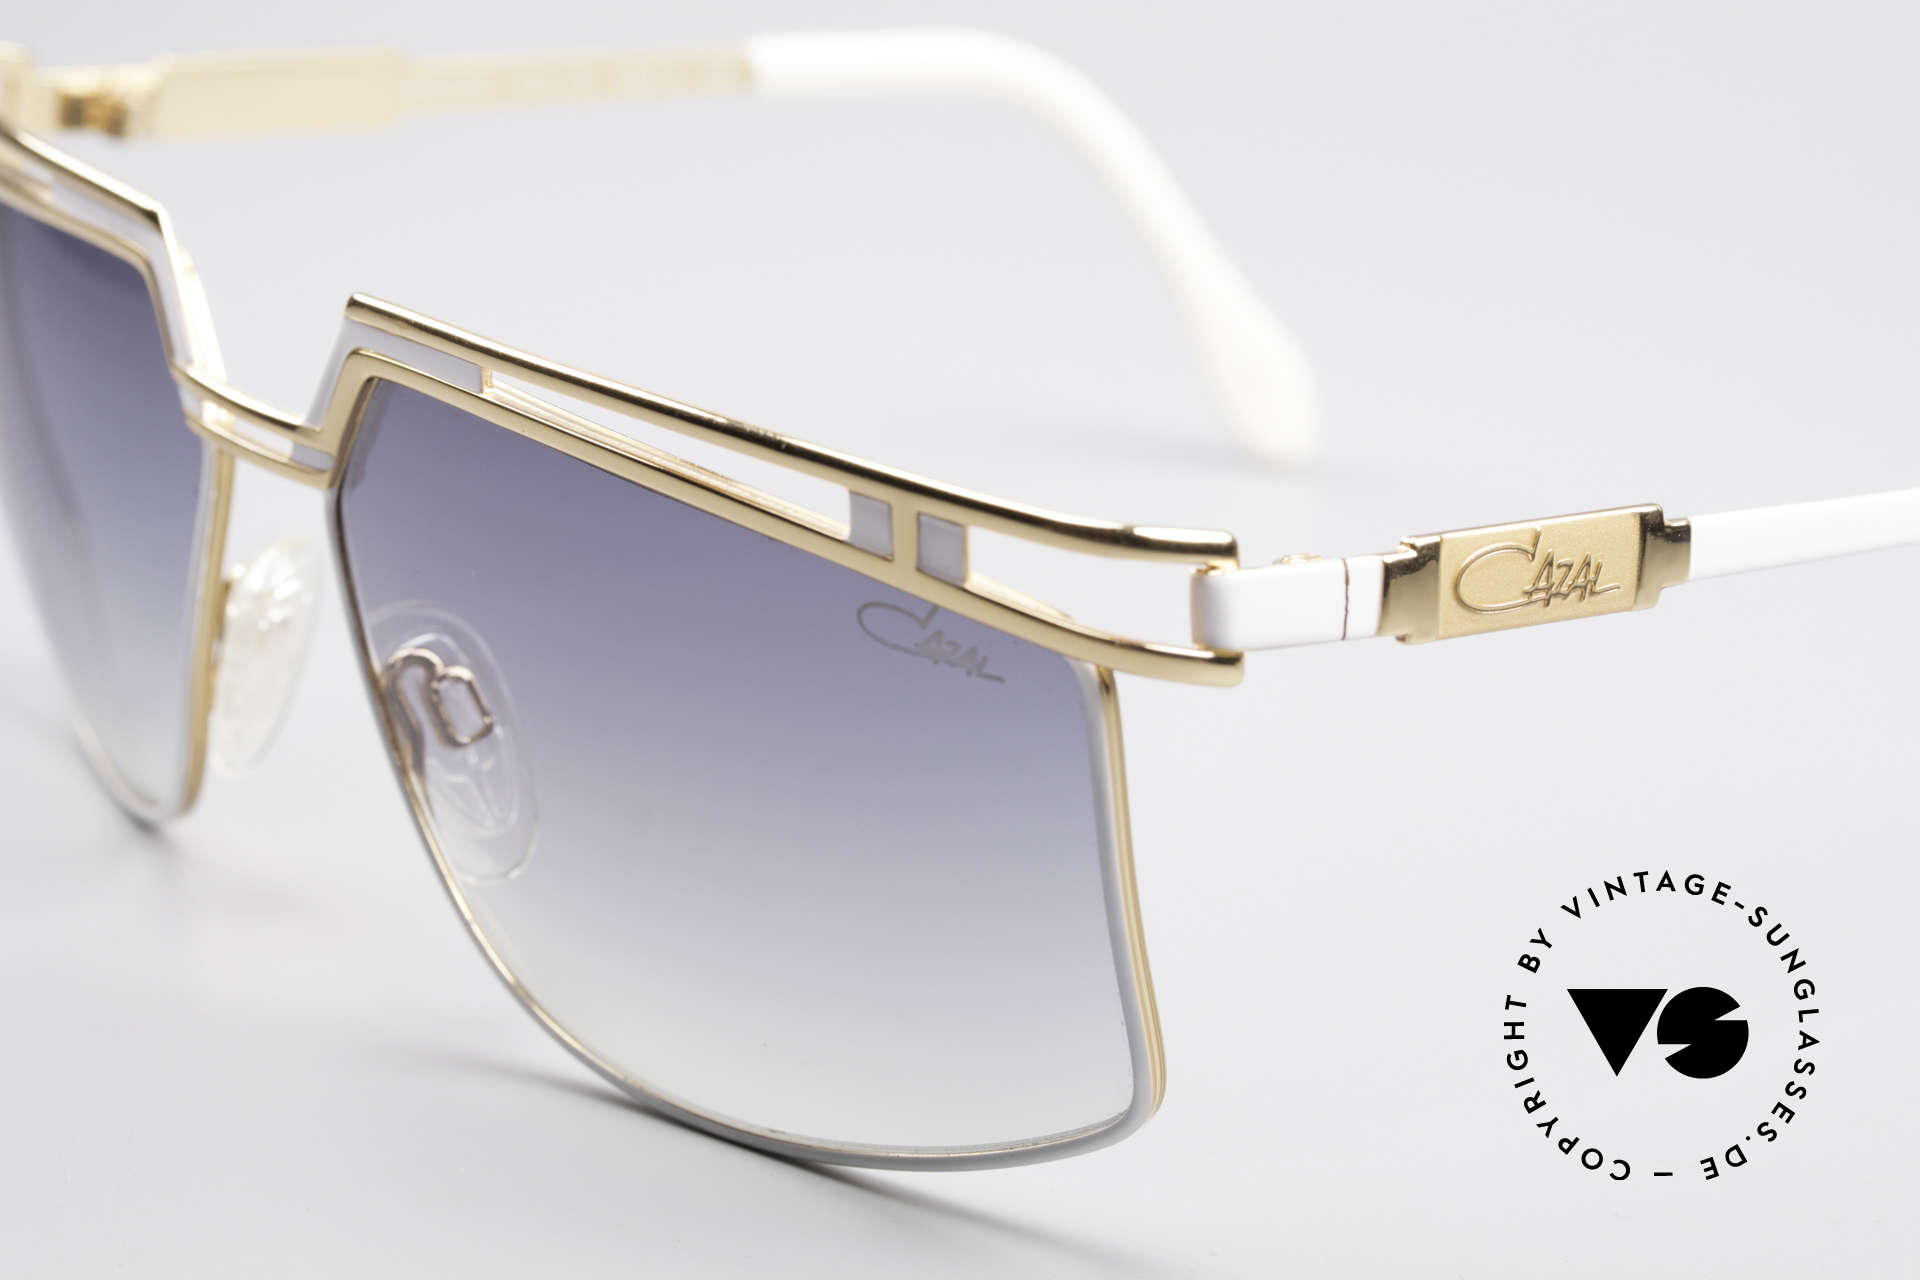 Cazal 957 XLarge HipHop Vintage Shades, col.code 332: white-gold frame with gray gradient lenses, Made for Men and Women